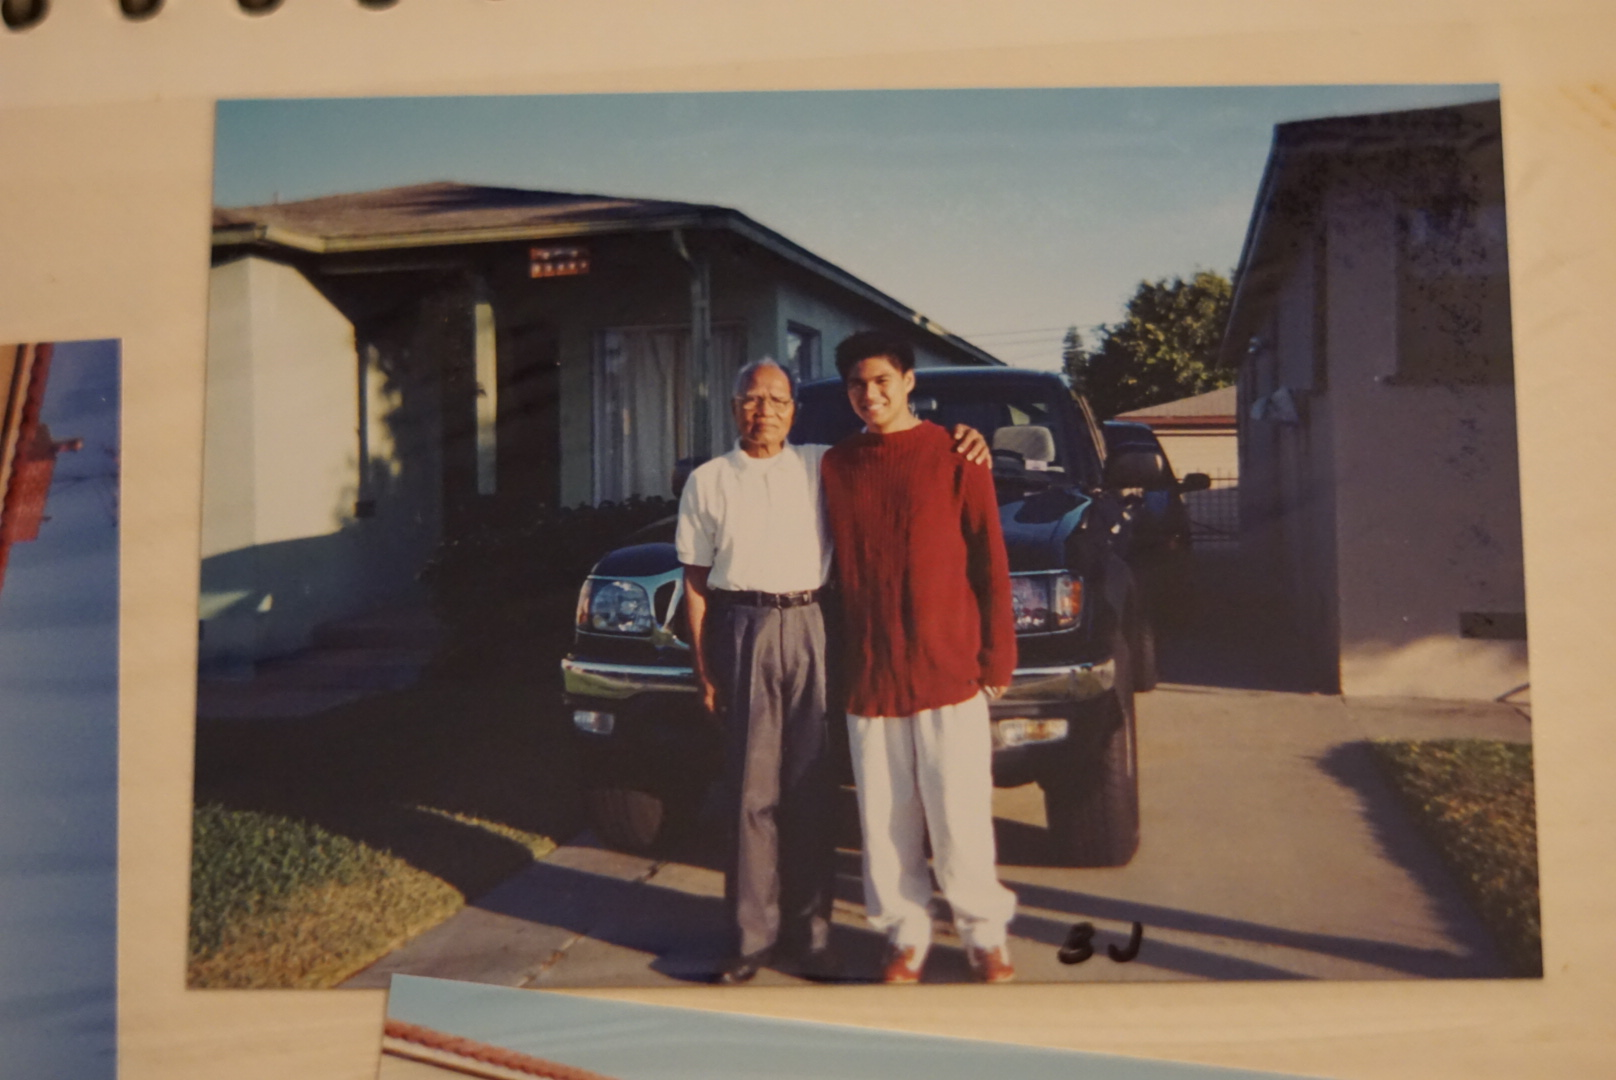 Me and Lolo. 2001. Photo credit: Lolo's archives.